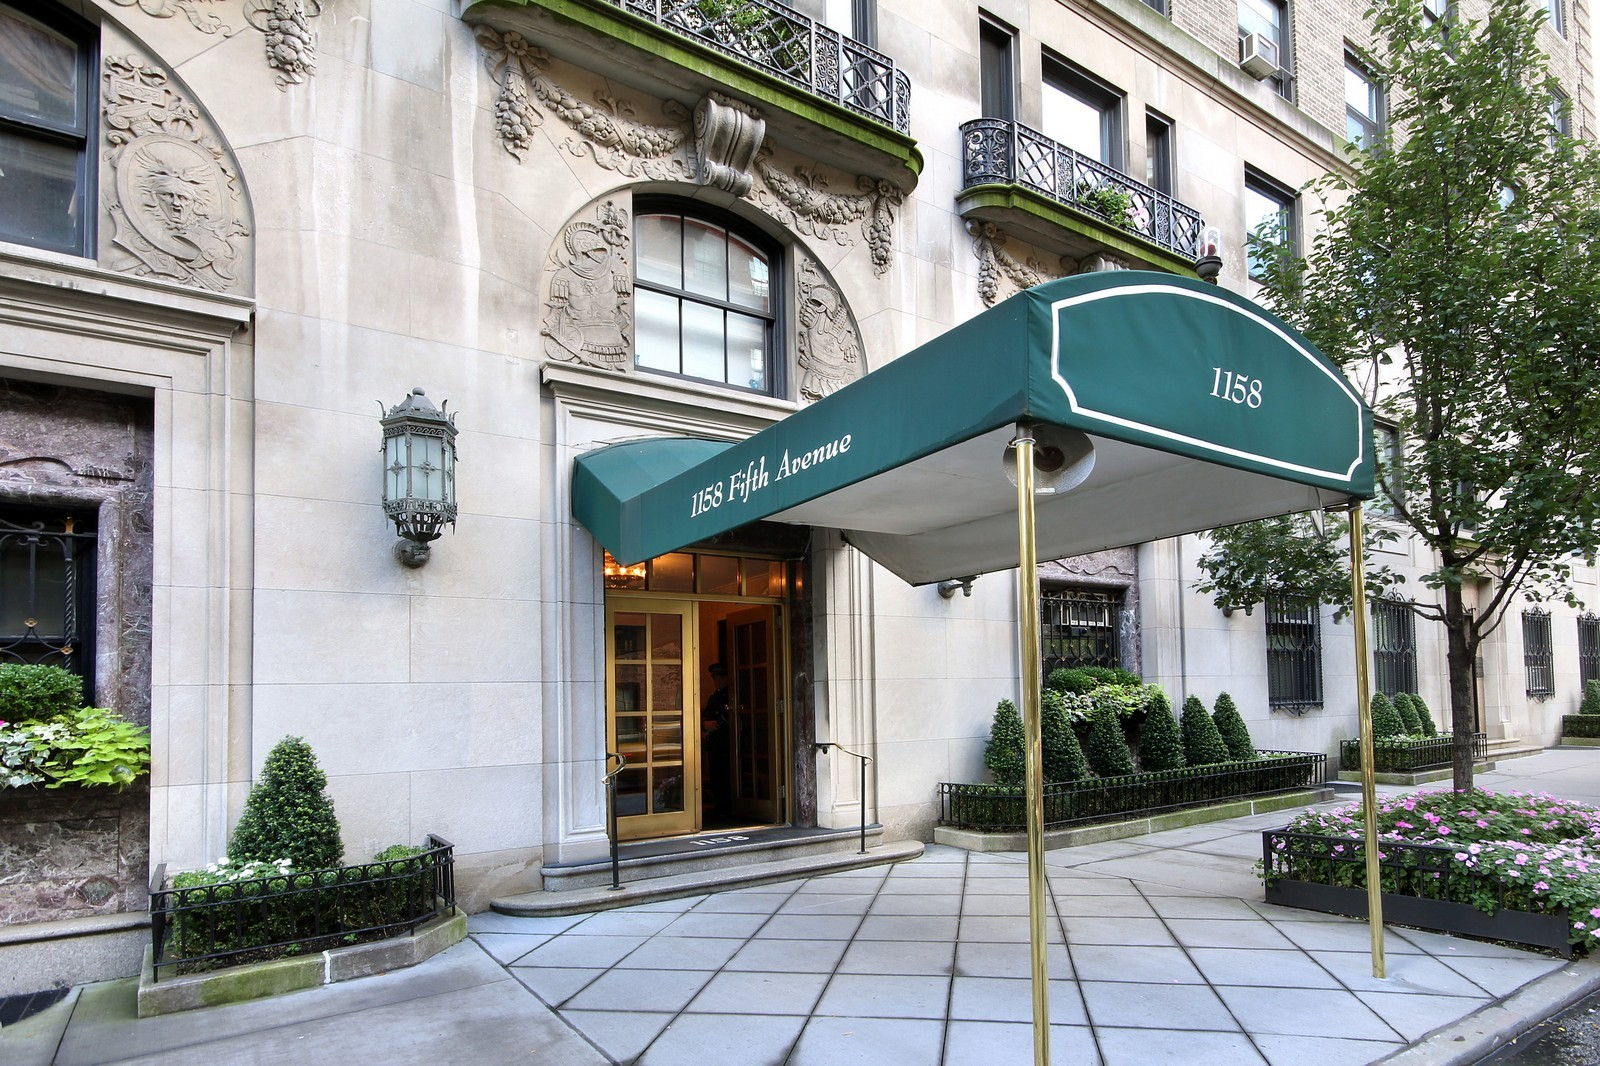 Corcoran, 1158 Fifth Avenue, Apt. 3A, Upper East Side Real Estate,  Manhattan For Sale, Homes, Upper East Side Co-op, Marie Schmon